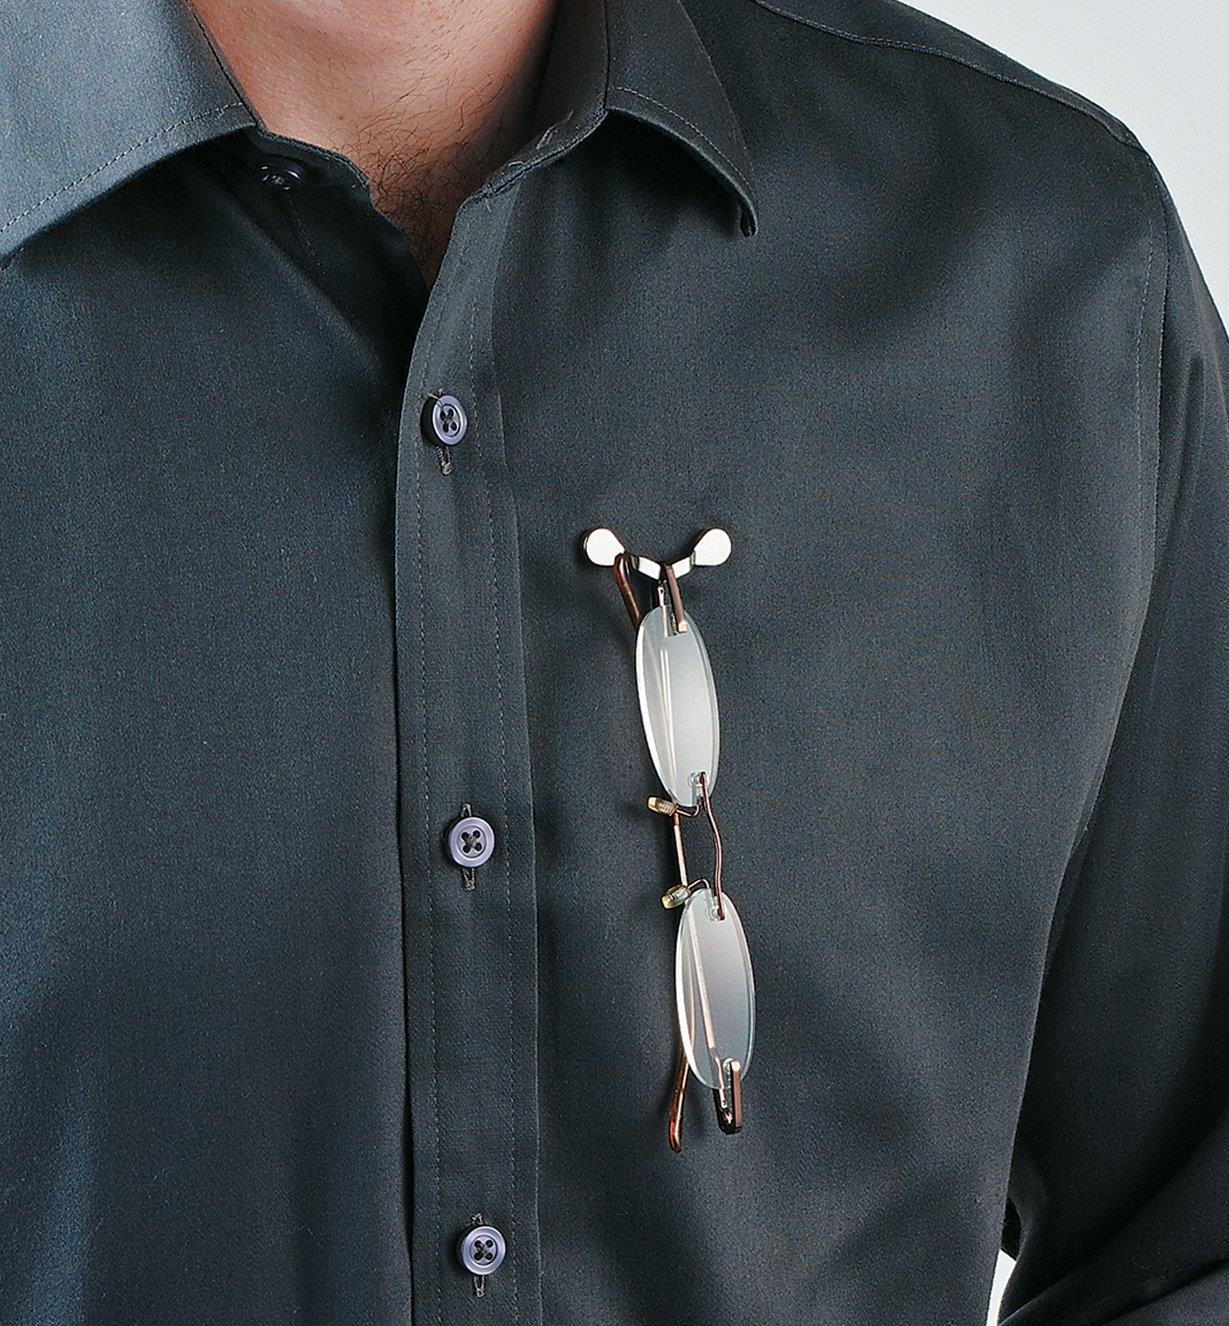 Glasses hanging from a ReadeRest attached to a button-up shirt